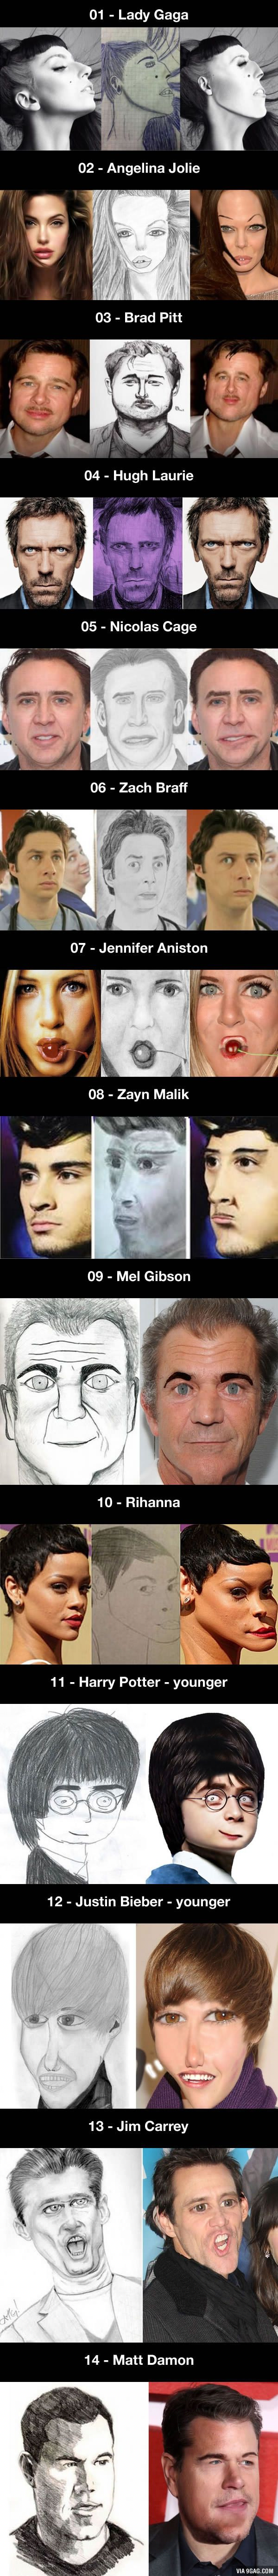 14 pictures of celebrities photoshopped to match fan art sketches (sorry for the nightmares)